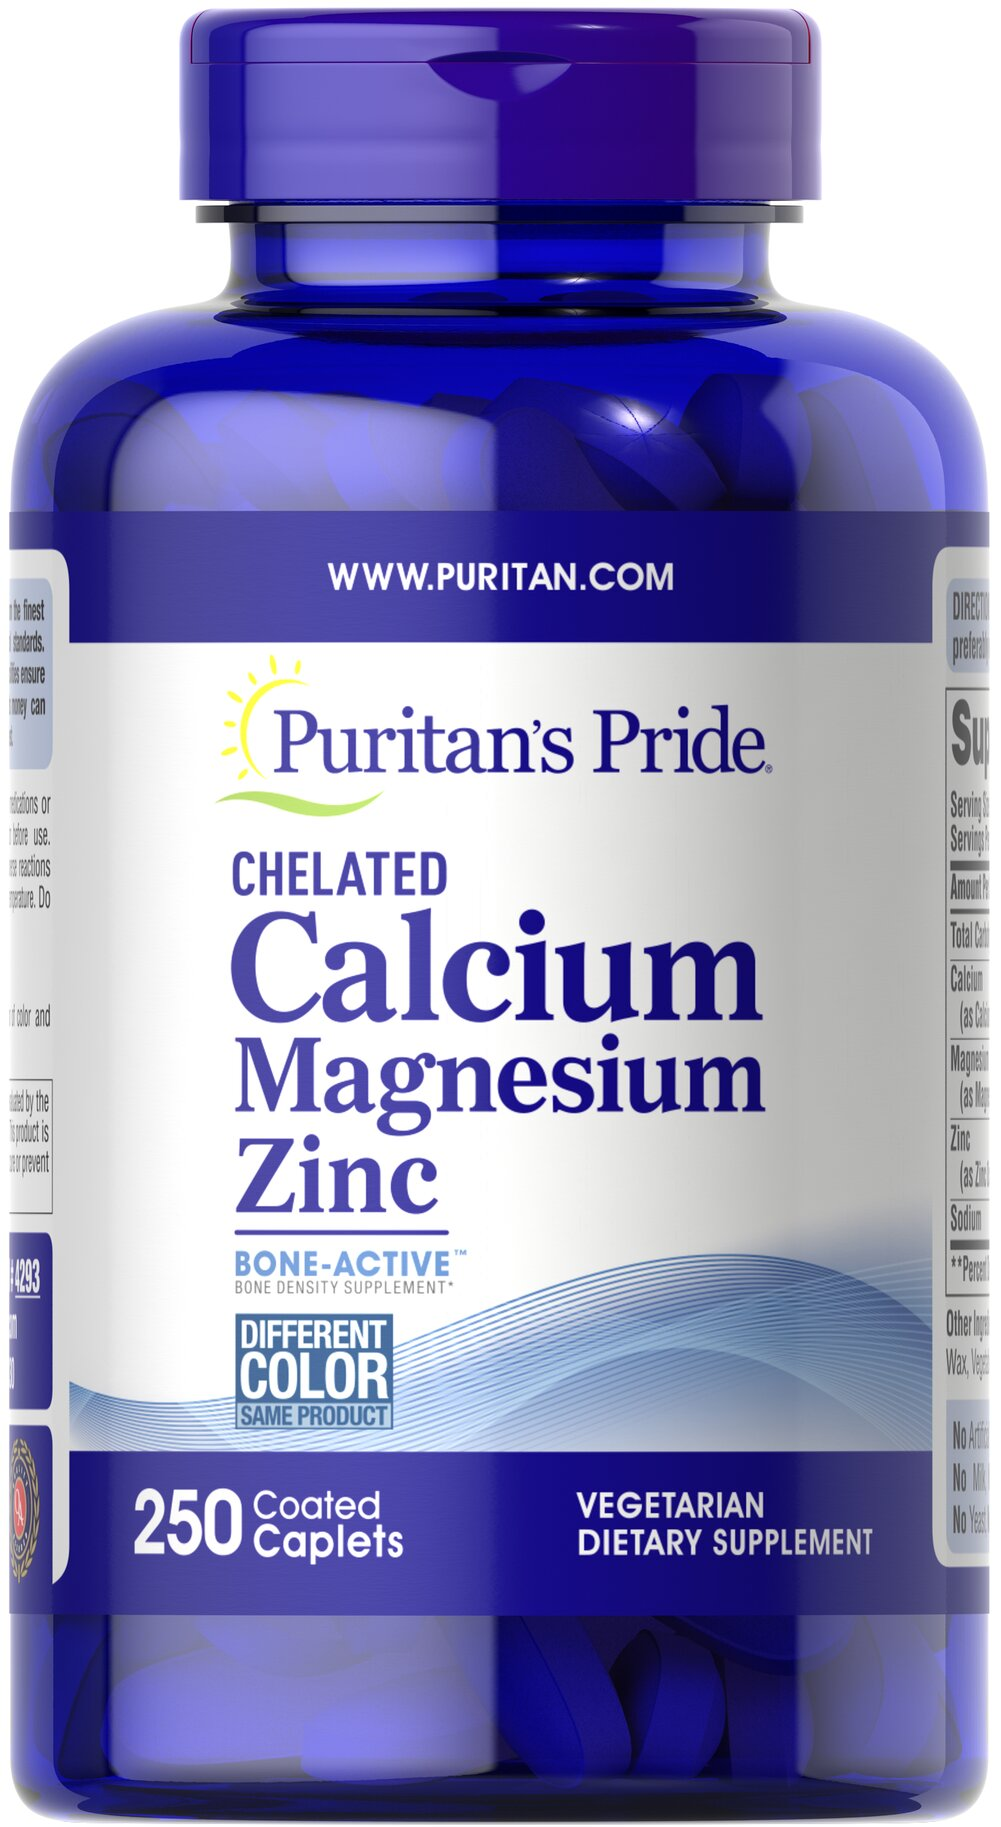 Chelated Calcium Magnesium Zinc <p>Looking for extra support for your bones?</p><p>Puritan's Pride offers a high quality Calcium, Magnesium, Zinc supplement that delivers 1000 mg Calcium, 400 mg Magnesium and 25 mg Zinc in one chelated form for optimal absorption.</p> 250 Caplets 1000 mg/400 mg/25 mg $17.99